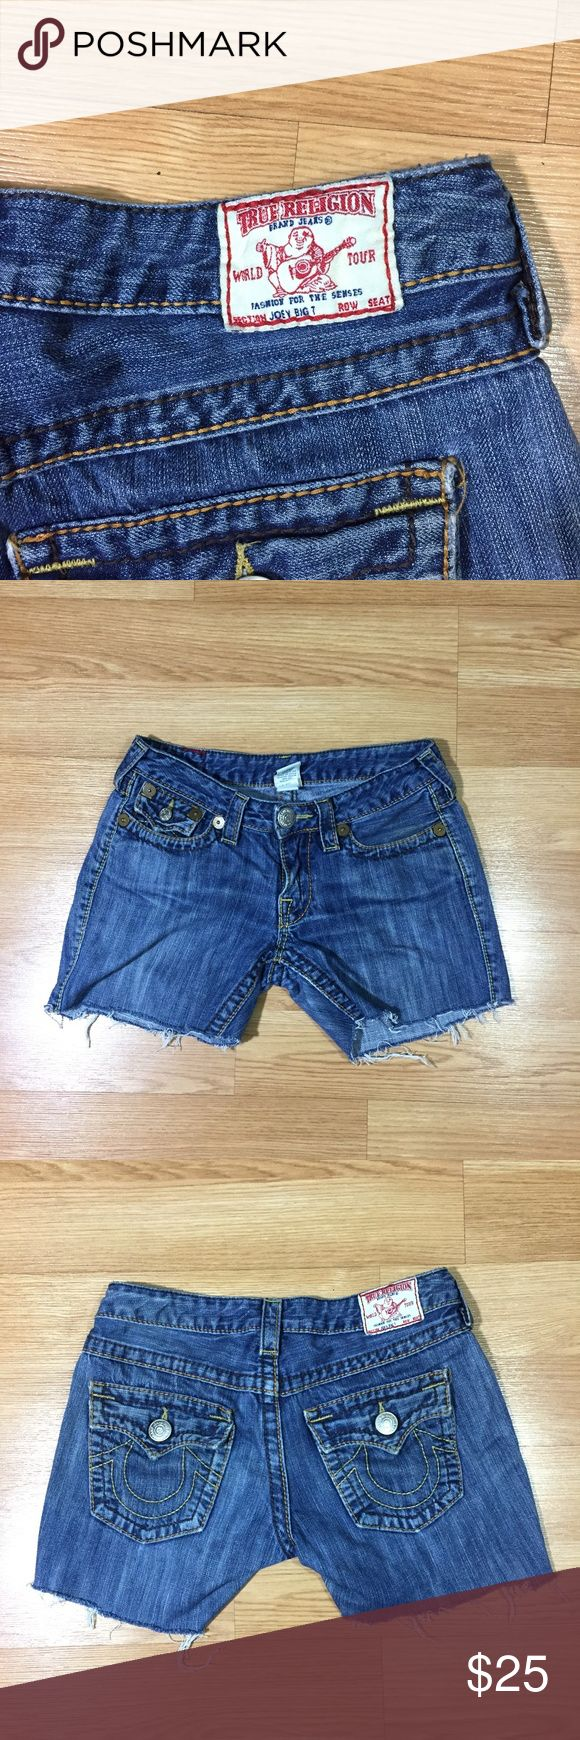 "True Religion Cutoff Jean Shorts Size 28 True Religion Joey Big 7  In good condition. Washed and ready to go.   Tagged size: 28 Actual waist: 30"" Length: 12"" Inseam: 5"" True Religion Shorts Jean Shorts"